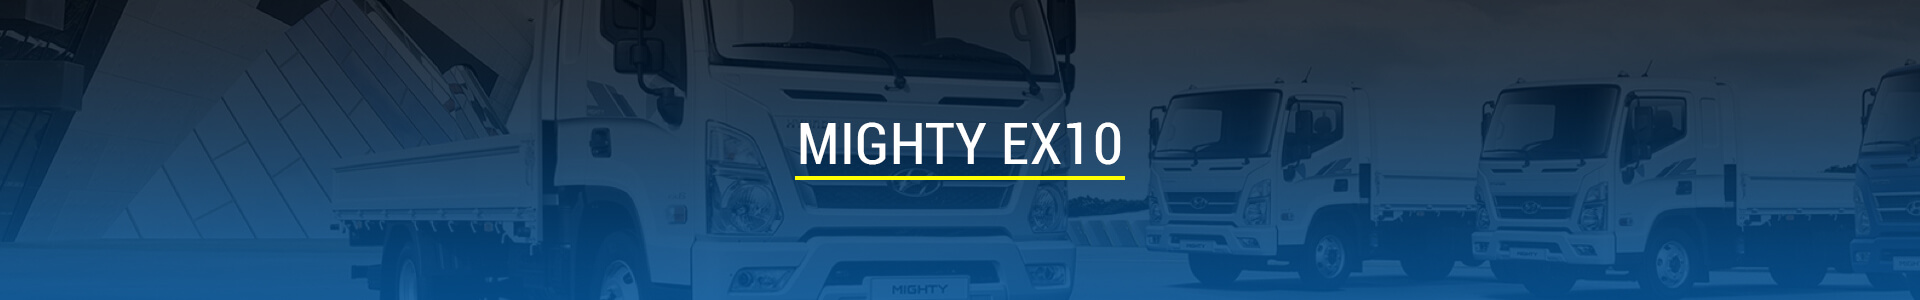 mighty ex10